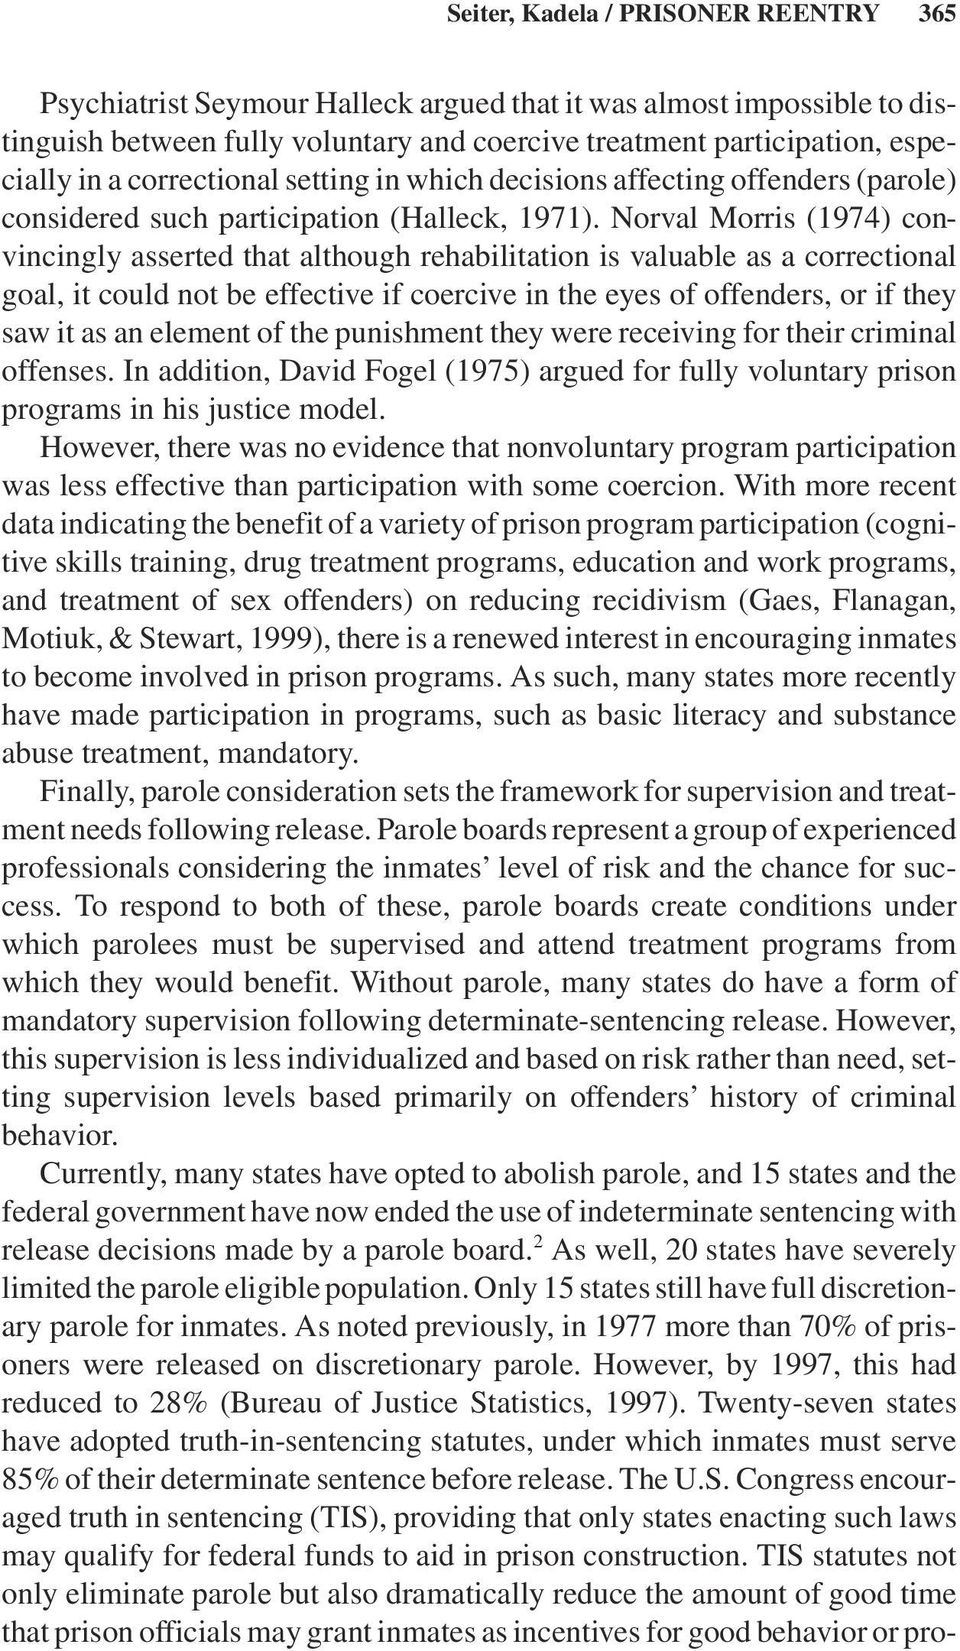 Norval Morris (1974) convincingly asserted that although rehabilitation is valuable as a correctional goal, it could not be effective if coercive in the eyes of offenders, or if they saw it as an